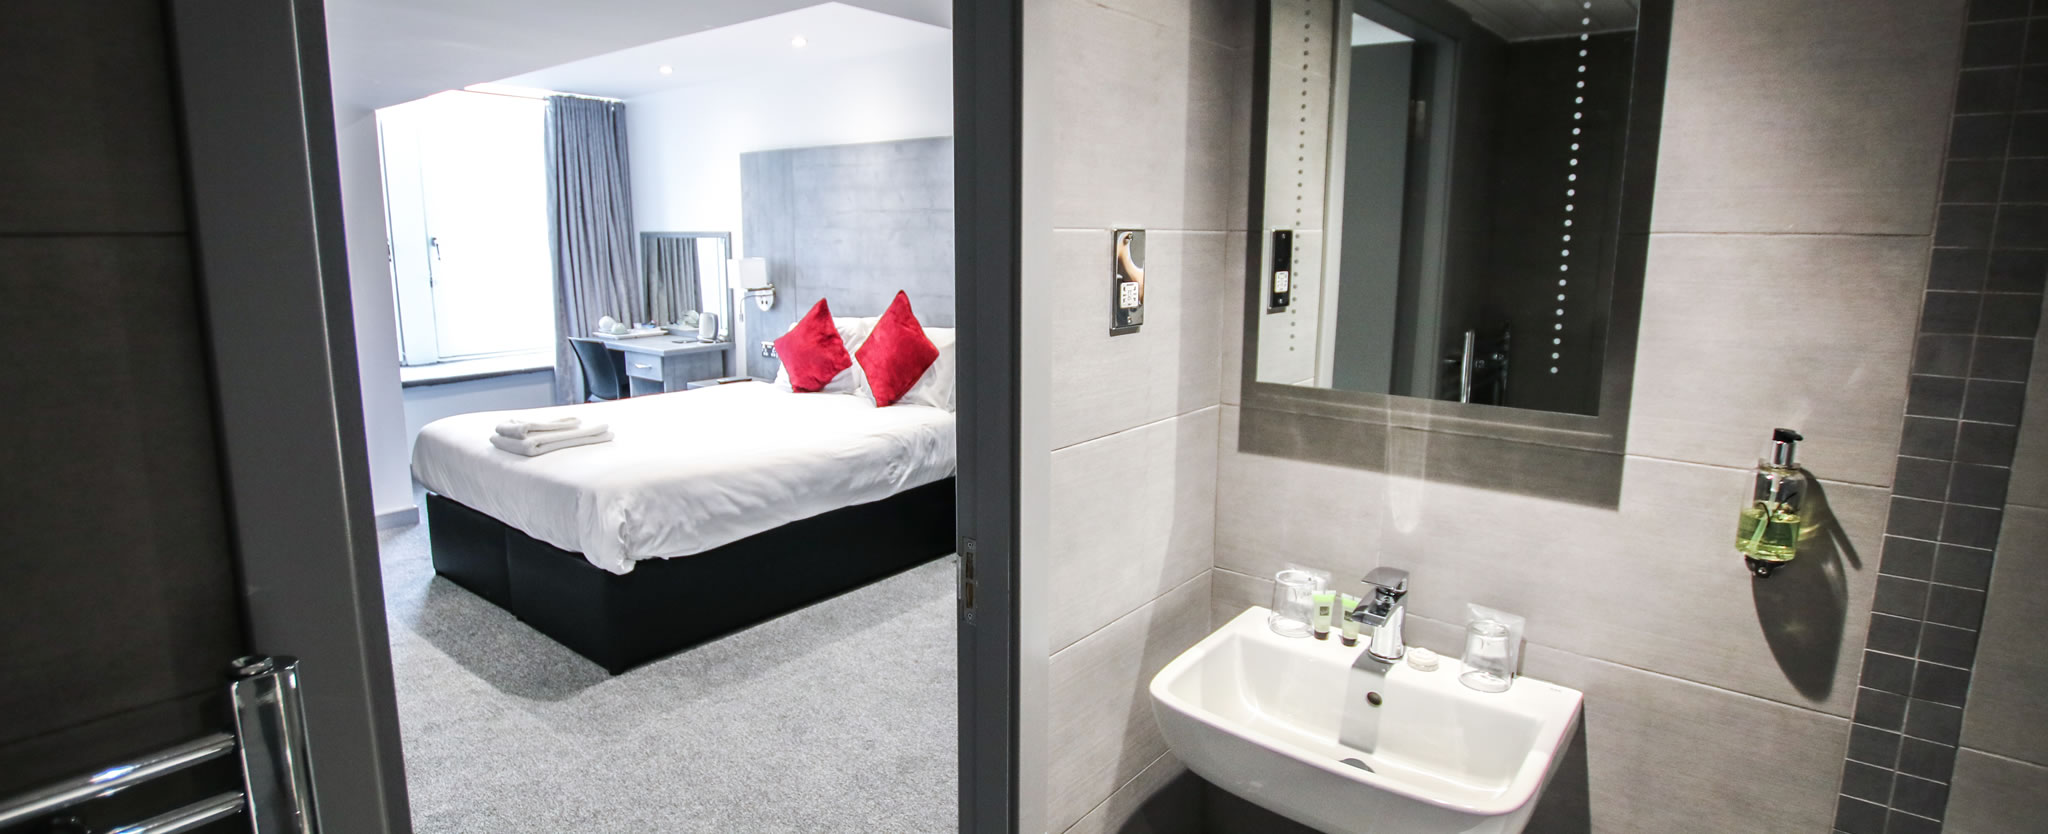 City Centre Hotel Rooms